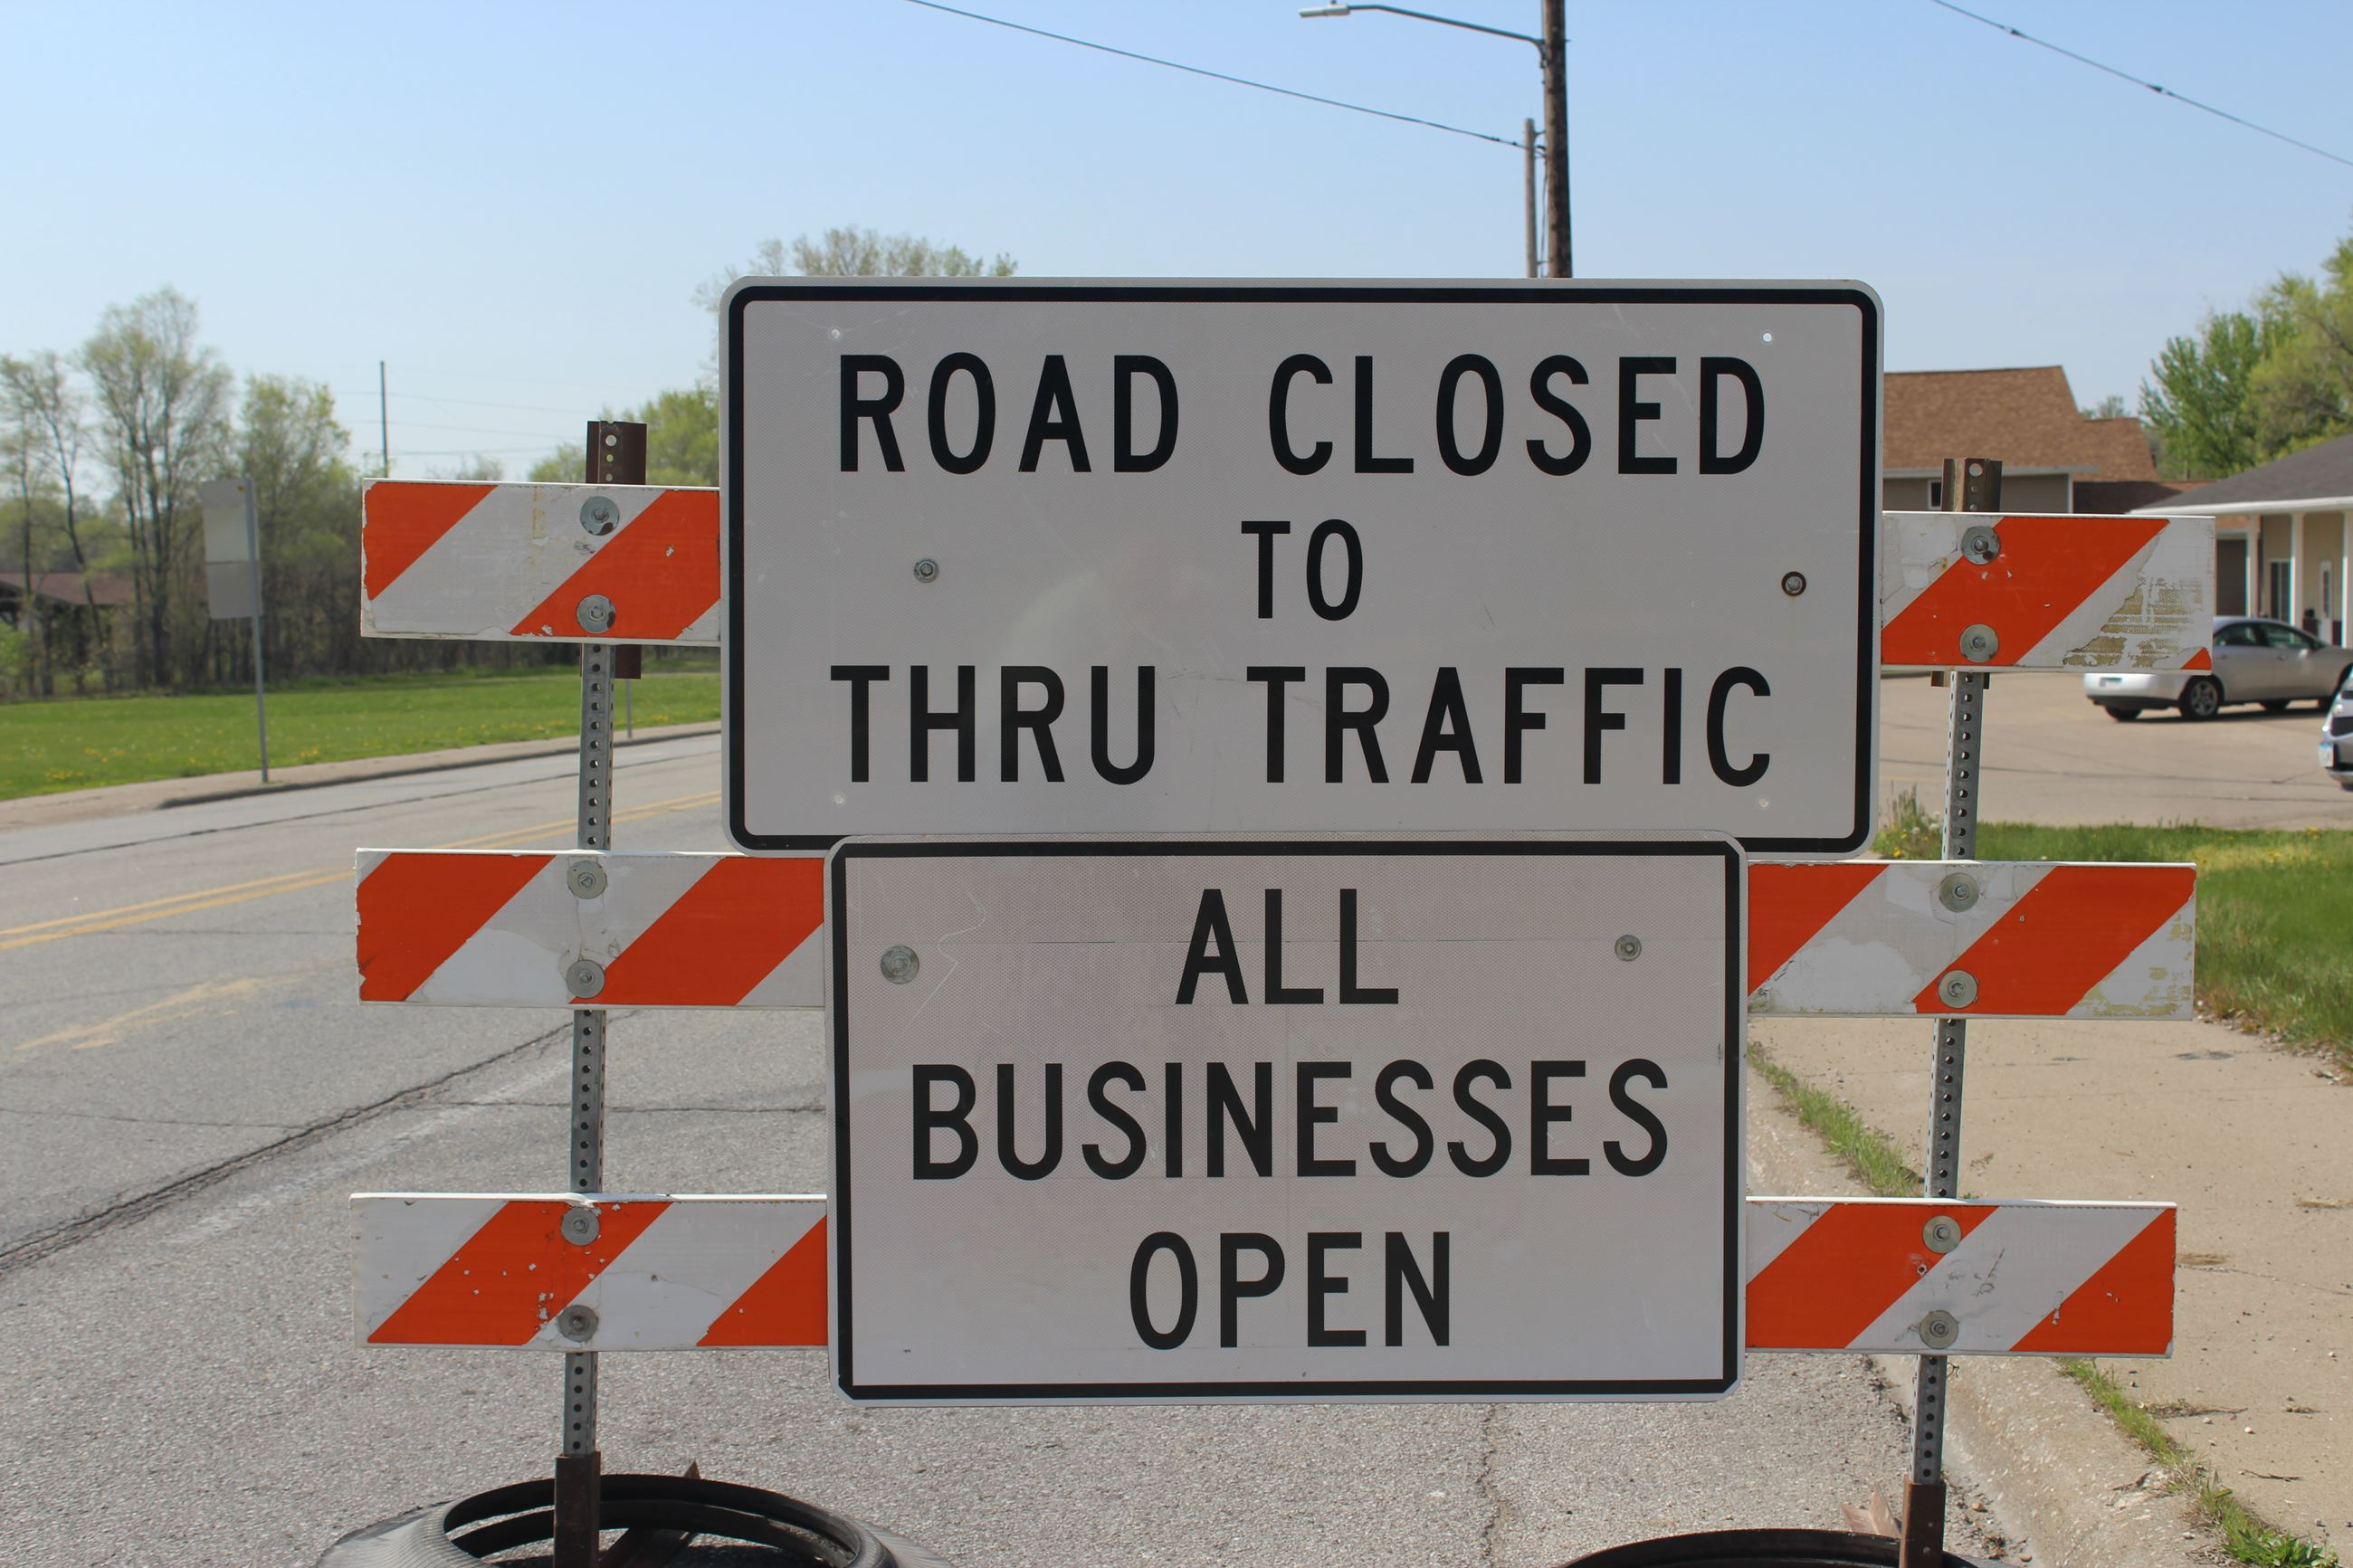 042721 Grandview Avenue - road closed but open to businesses (JPG)